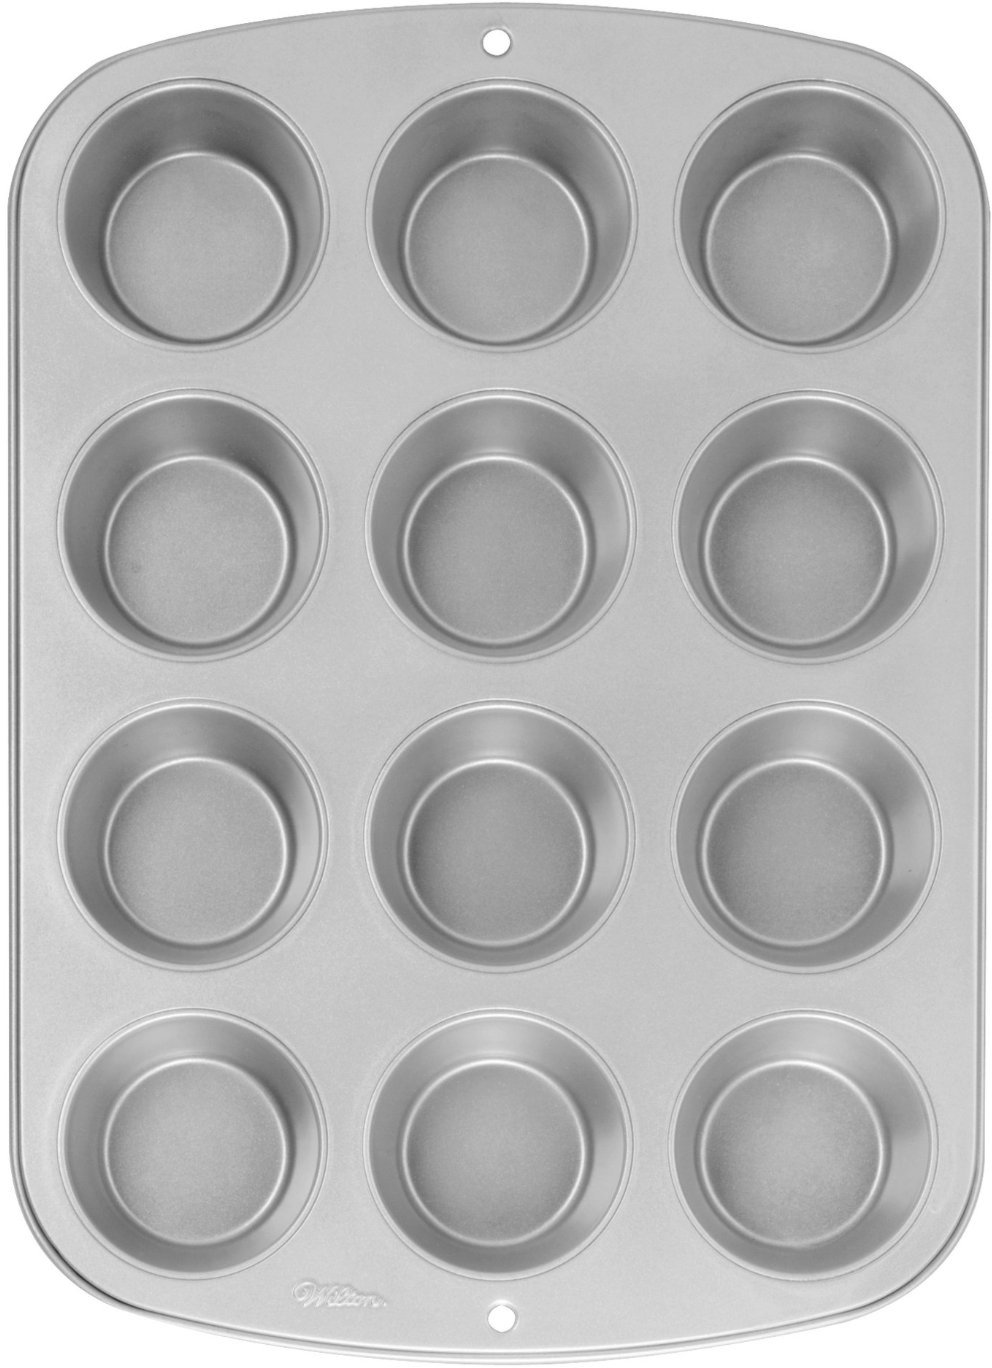 Review of Wilton Recipe Right Nonstick 12-Cup Regular Muffin Pan